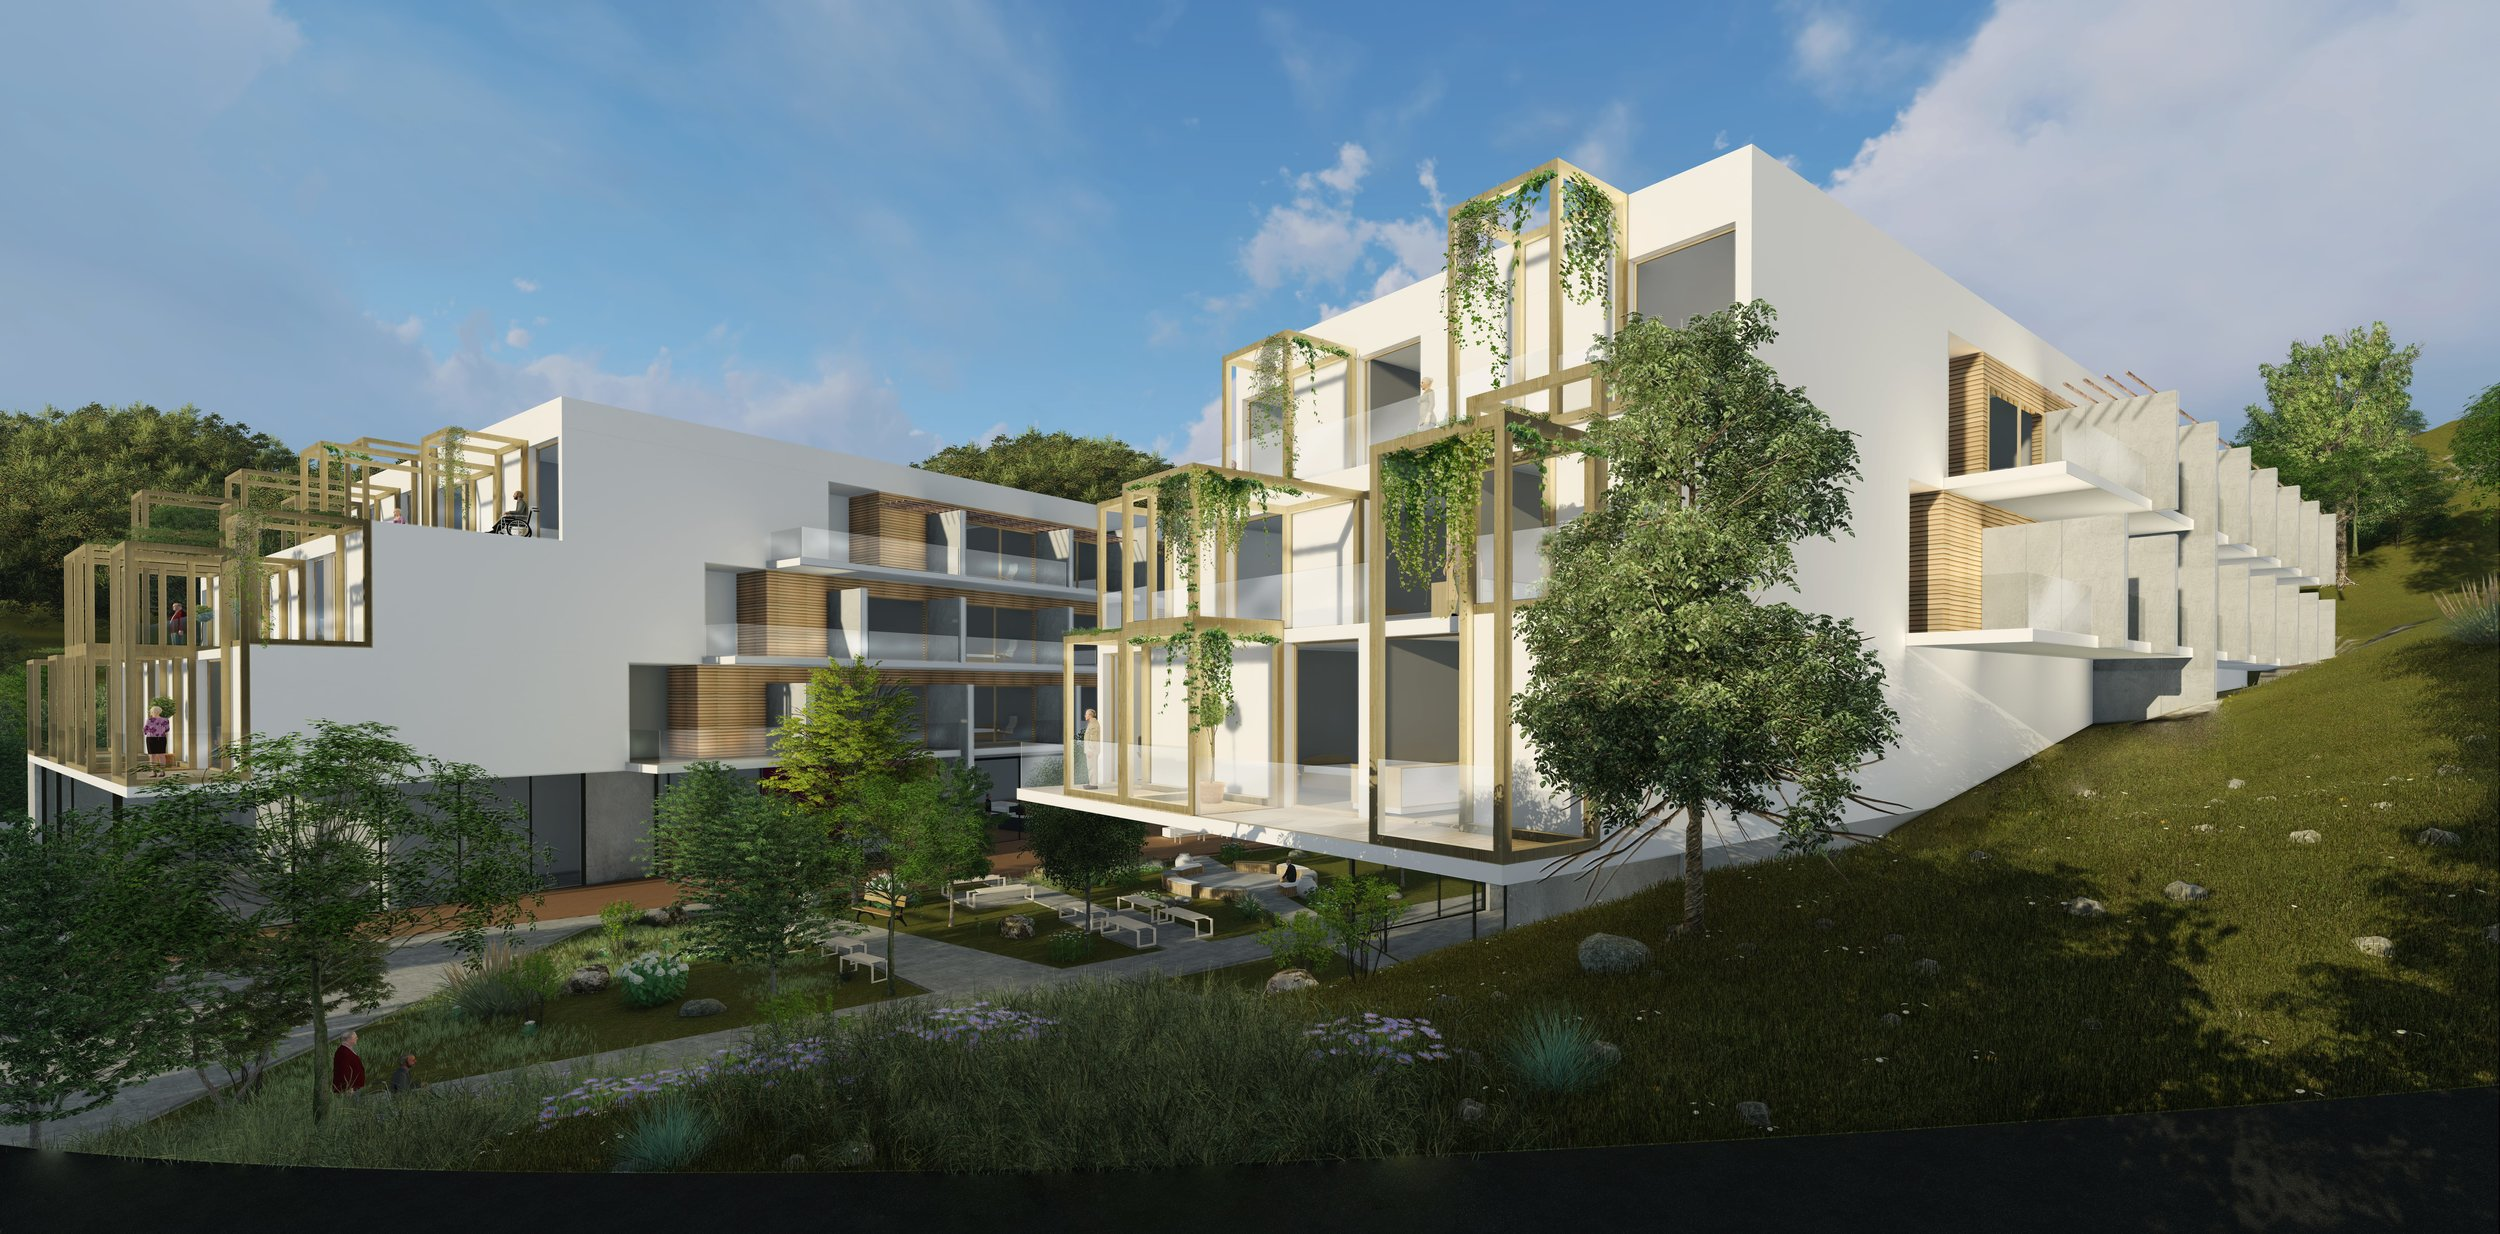 HOUSE FOR THE ELDERLY - Year: 2018Location: PrishtinaClient: Private investorMain features:• Attractive features of the site used during the design concept• Atropomorphic data• Ergonometric data• Wheel chairs• Public spaces• Solar gain• Thermal efficiency, resource recovery and recycling